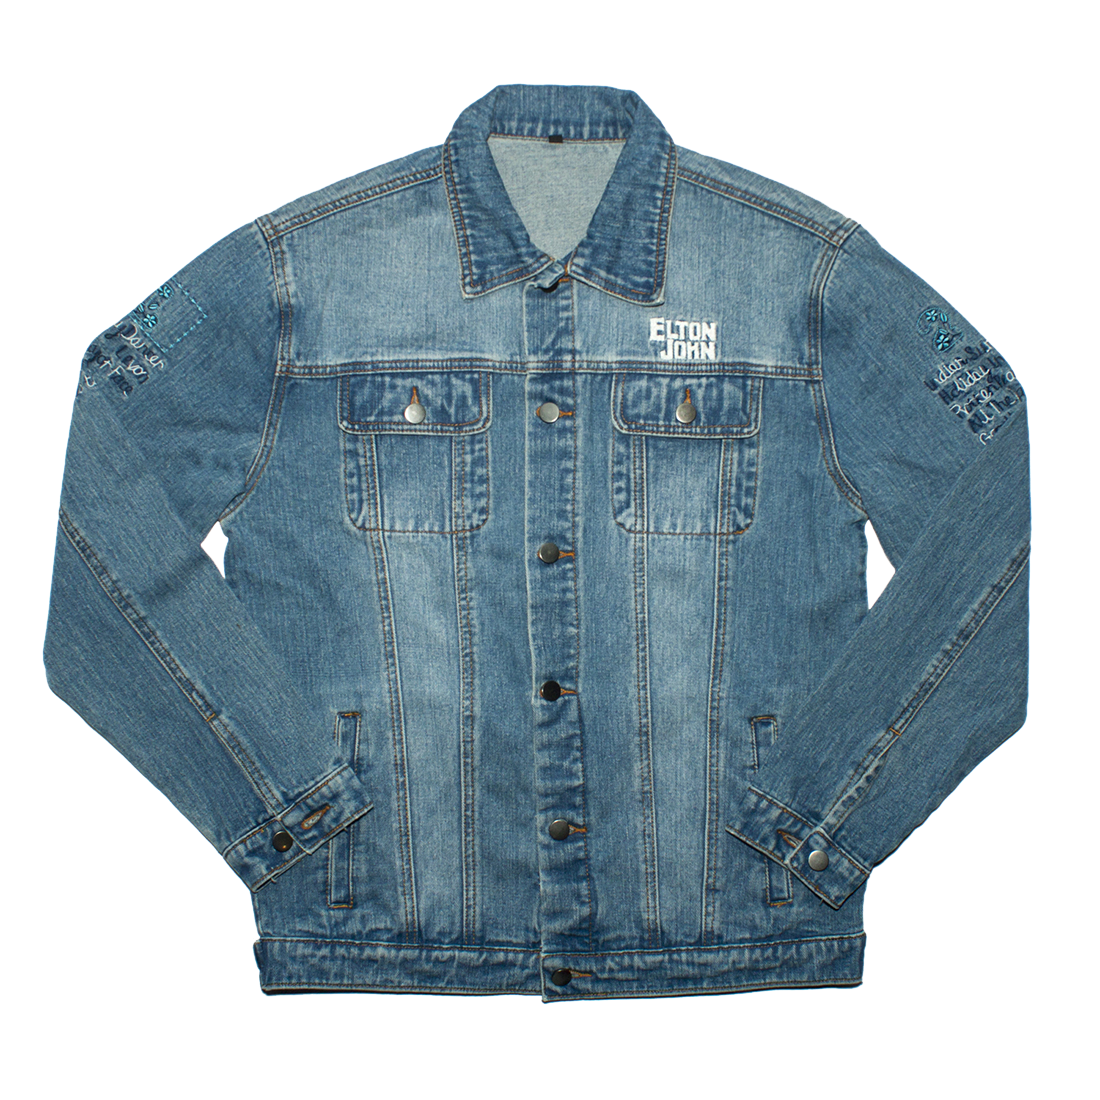 Elton John: MATW Denim Jacket - XL